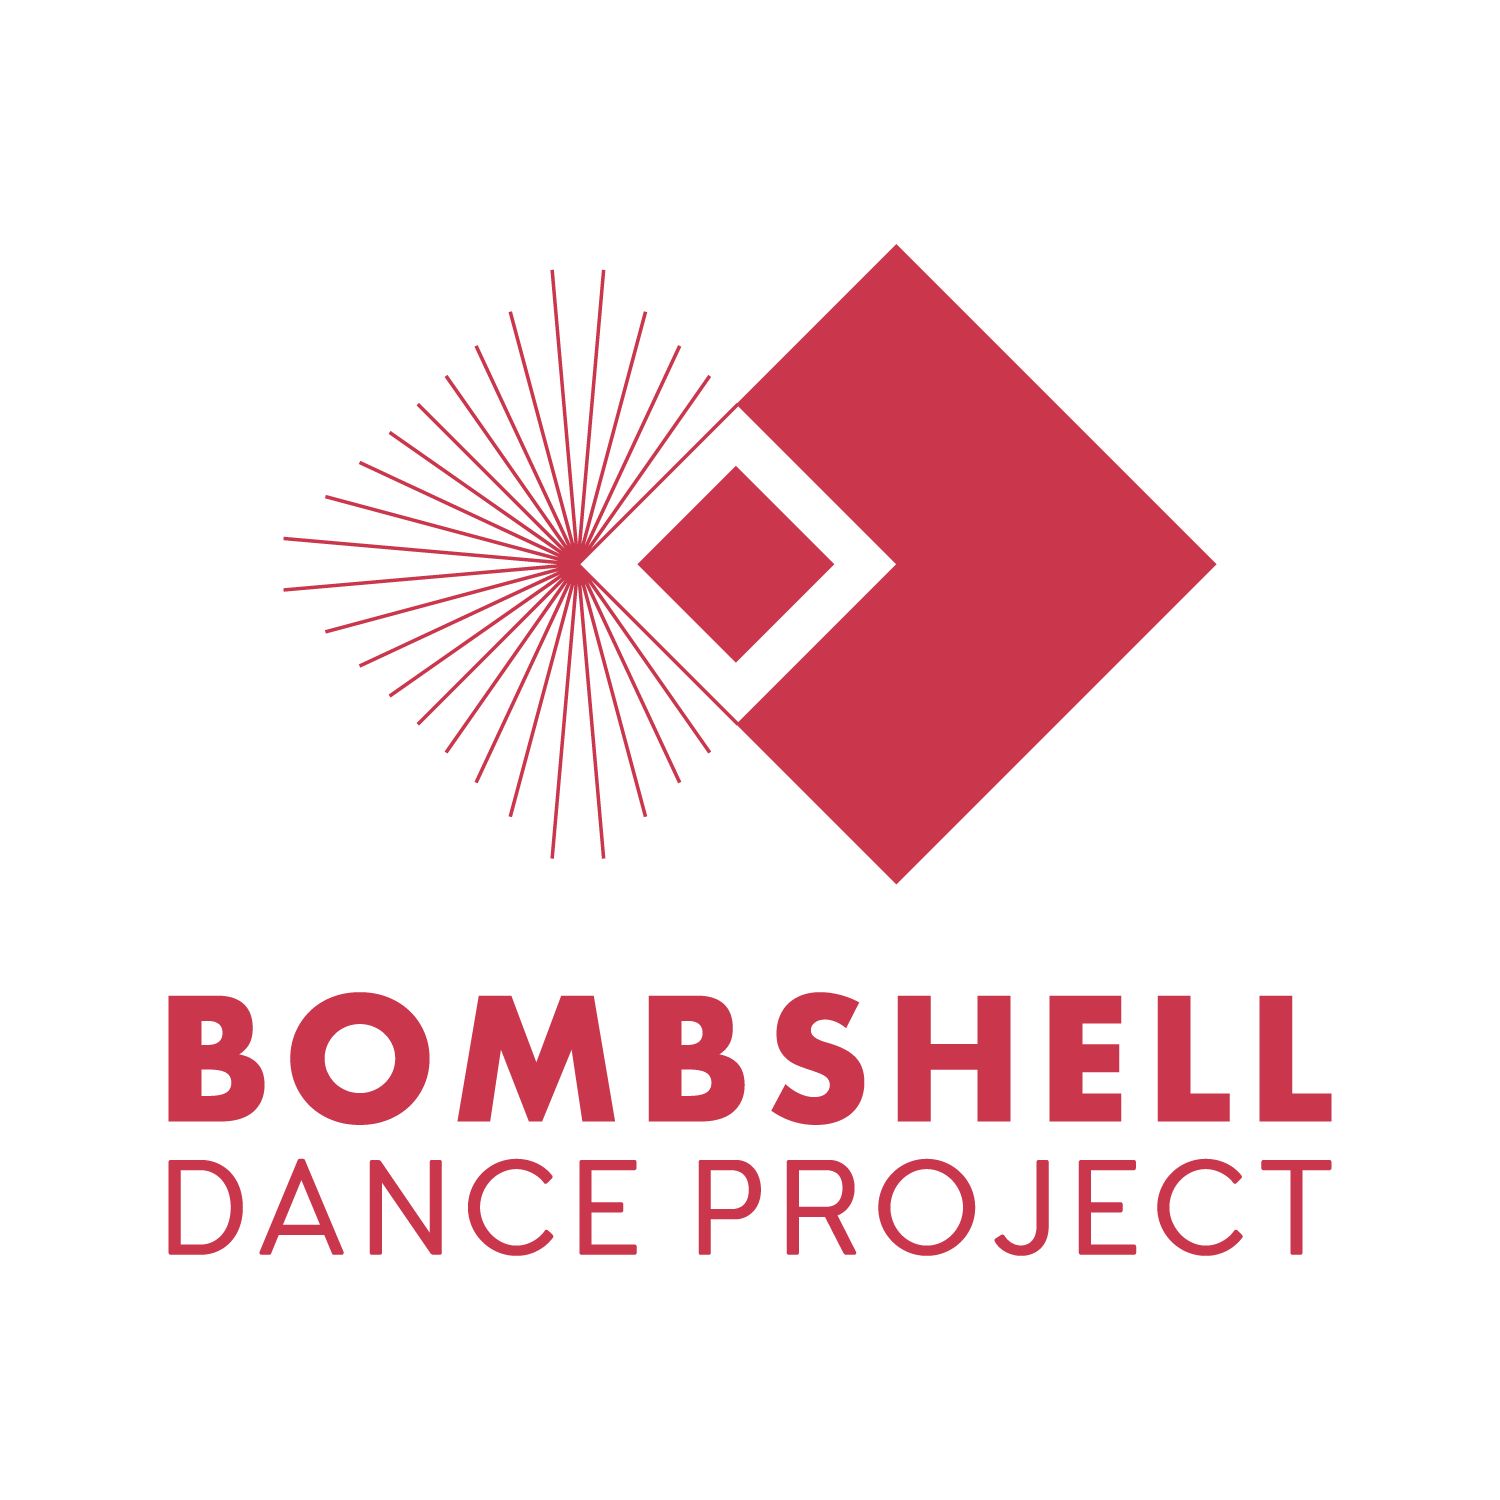 Bombshell Dance Project